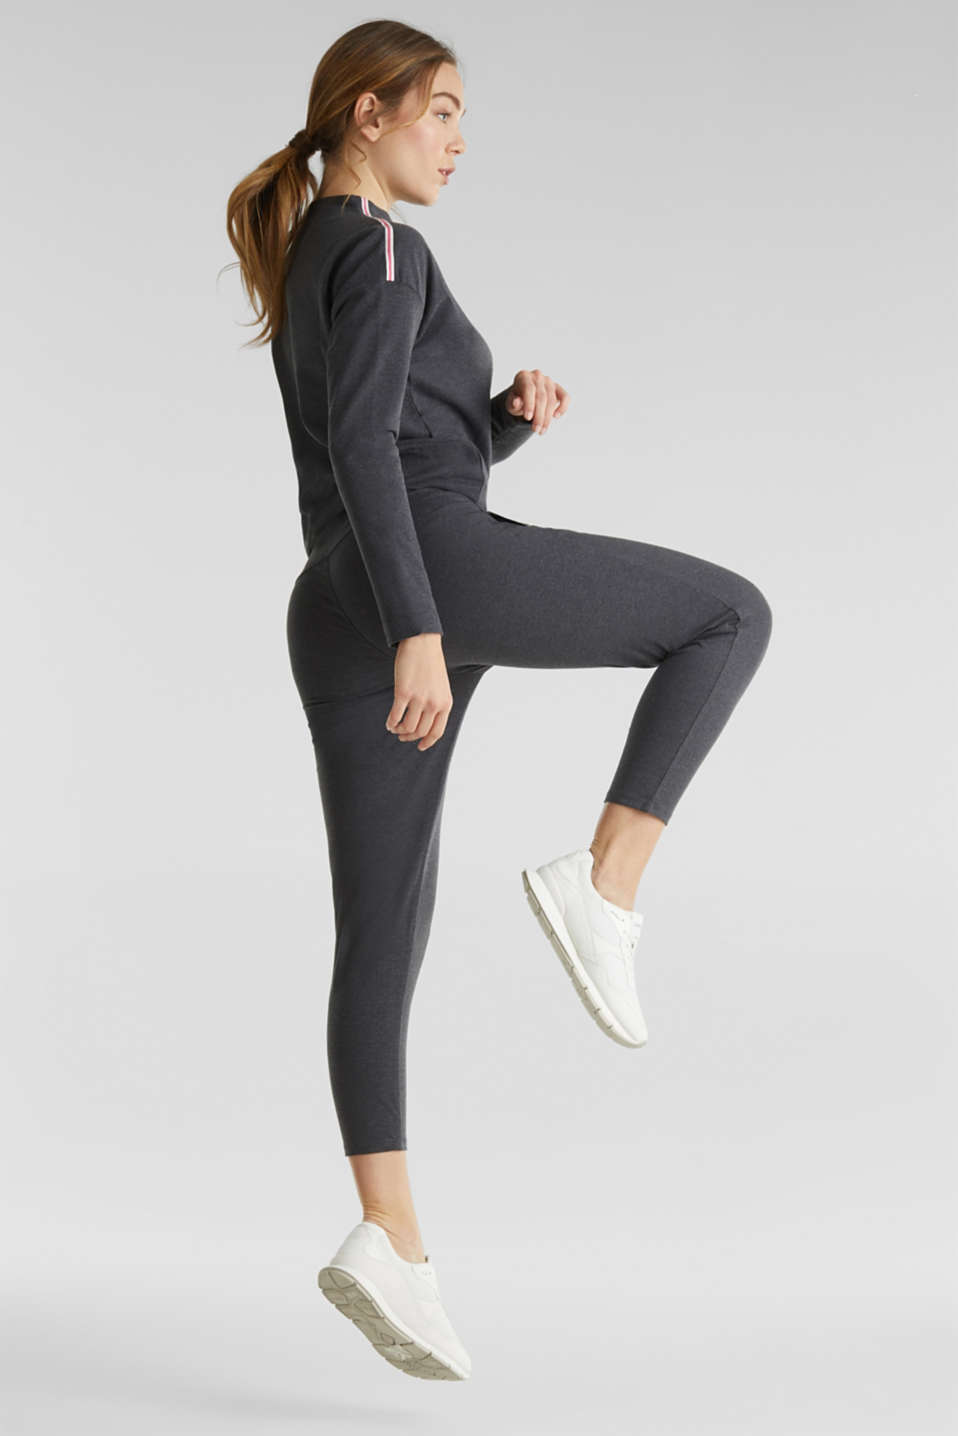 Ankle-length stretch jersey trousers with shiny details, ANTHRACITE 2, detail image number 1